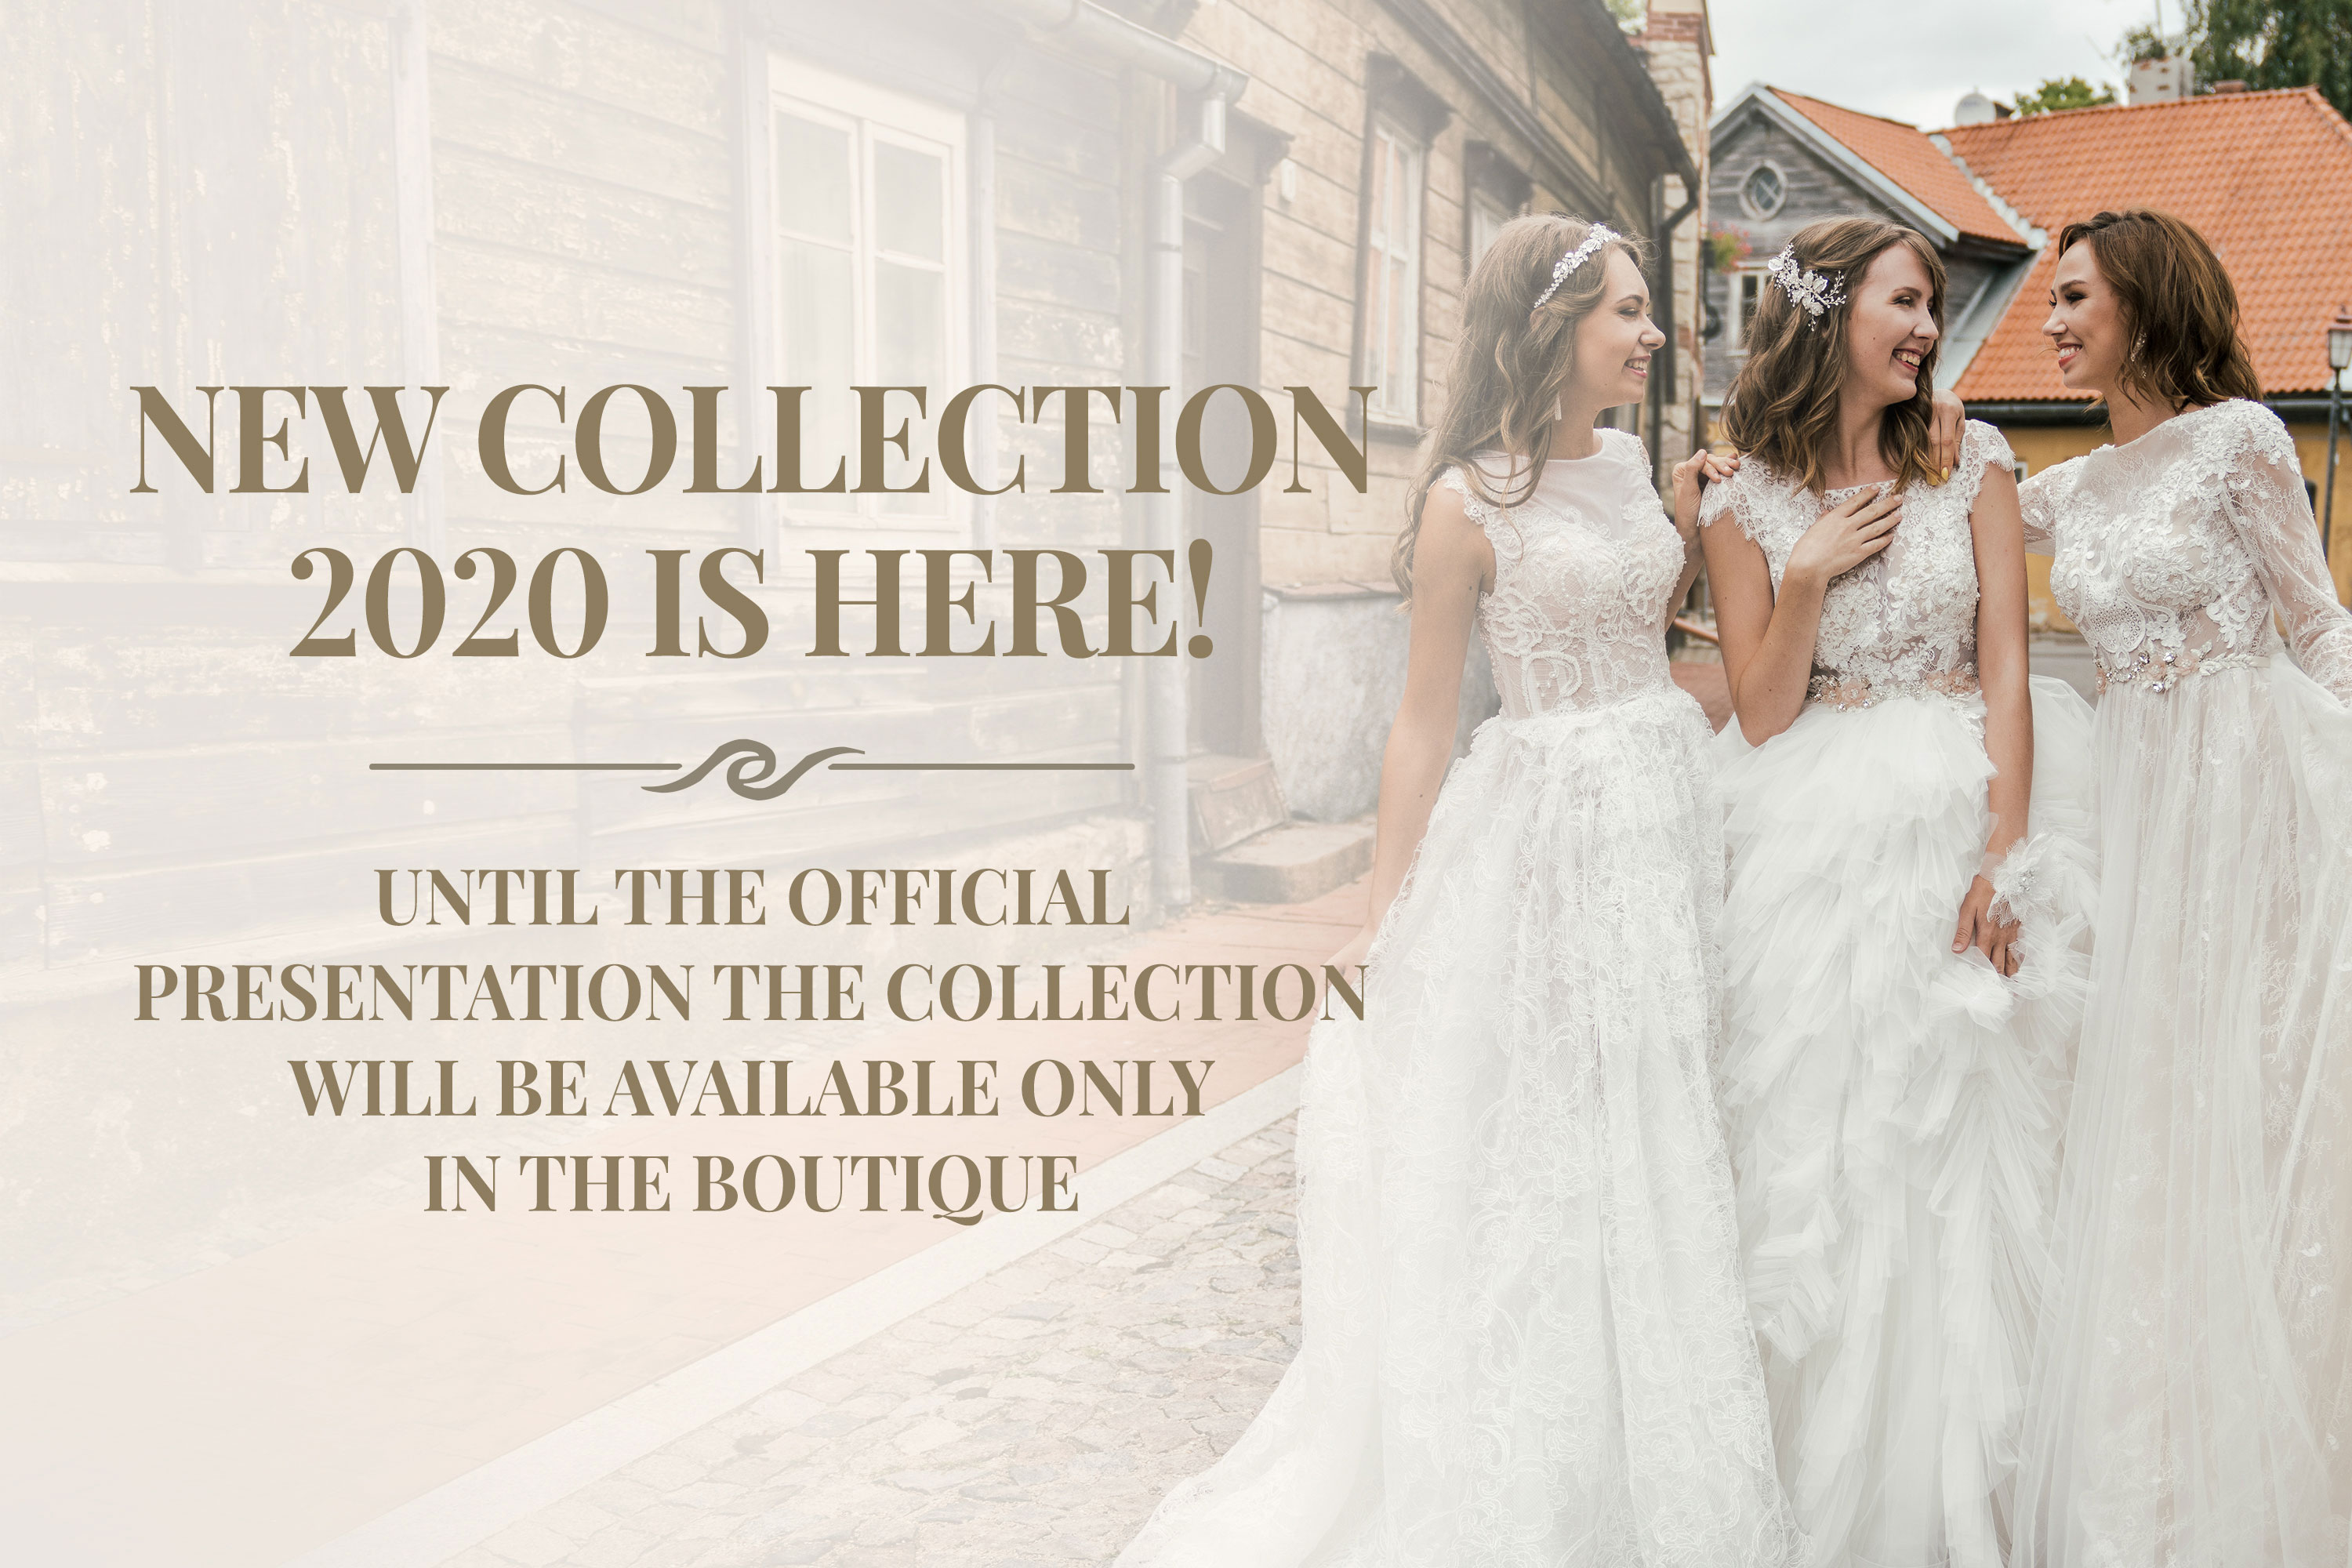 77cfeadff26 New collection 2020 is here! Until the official presentation the collection  will be available only in the boutique. wedding dresses ...